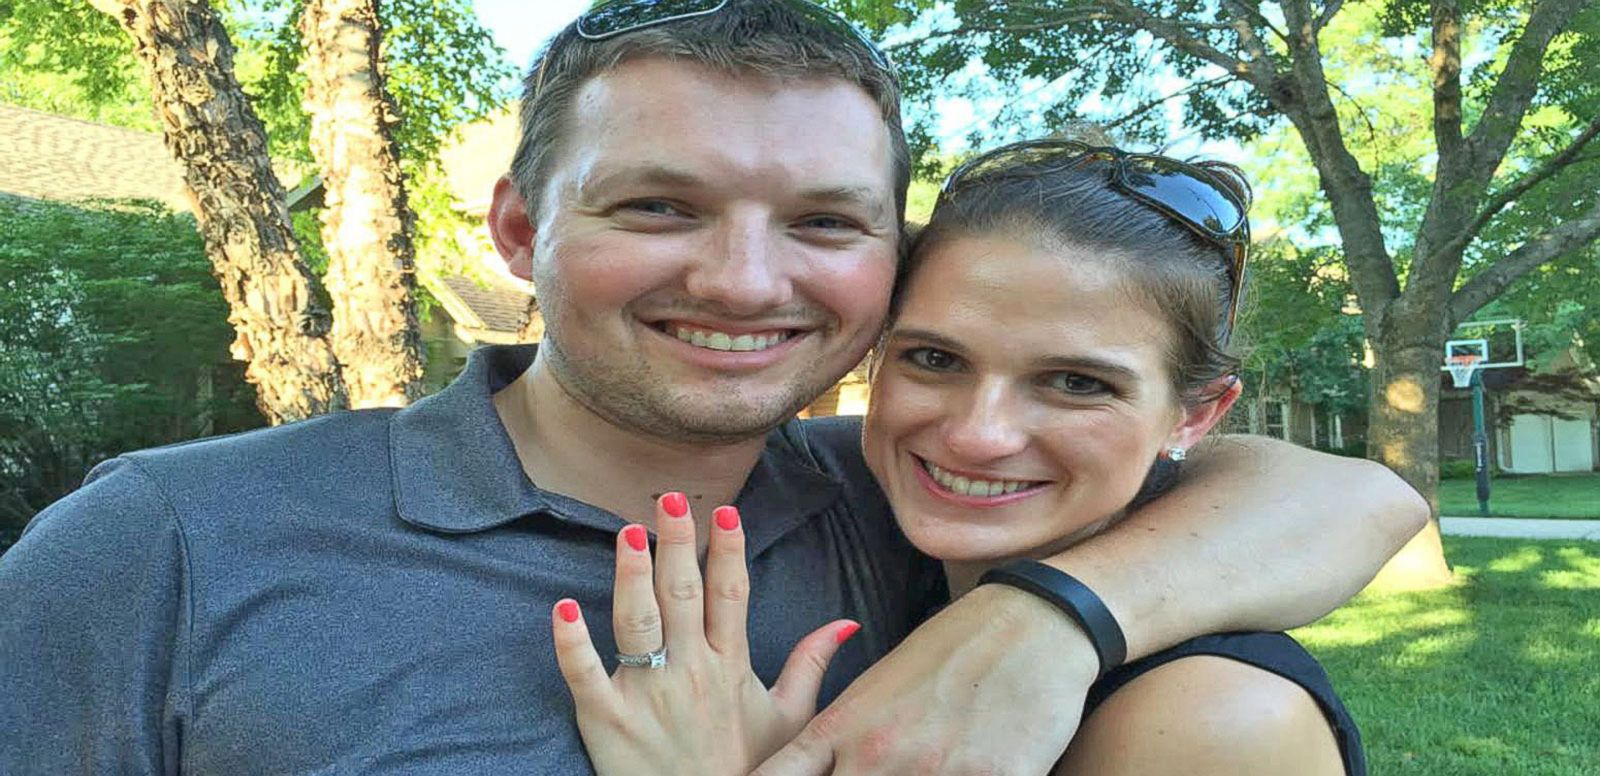 VIDEO: Couple's Lost Wedding Ring Returned From Hawaii Thanks to Coordinates Inscribed in Band